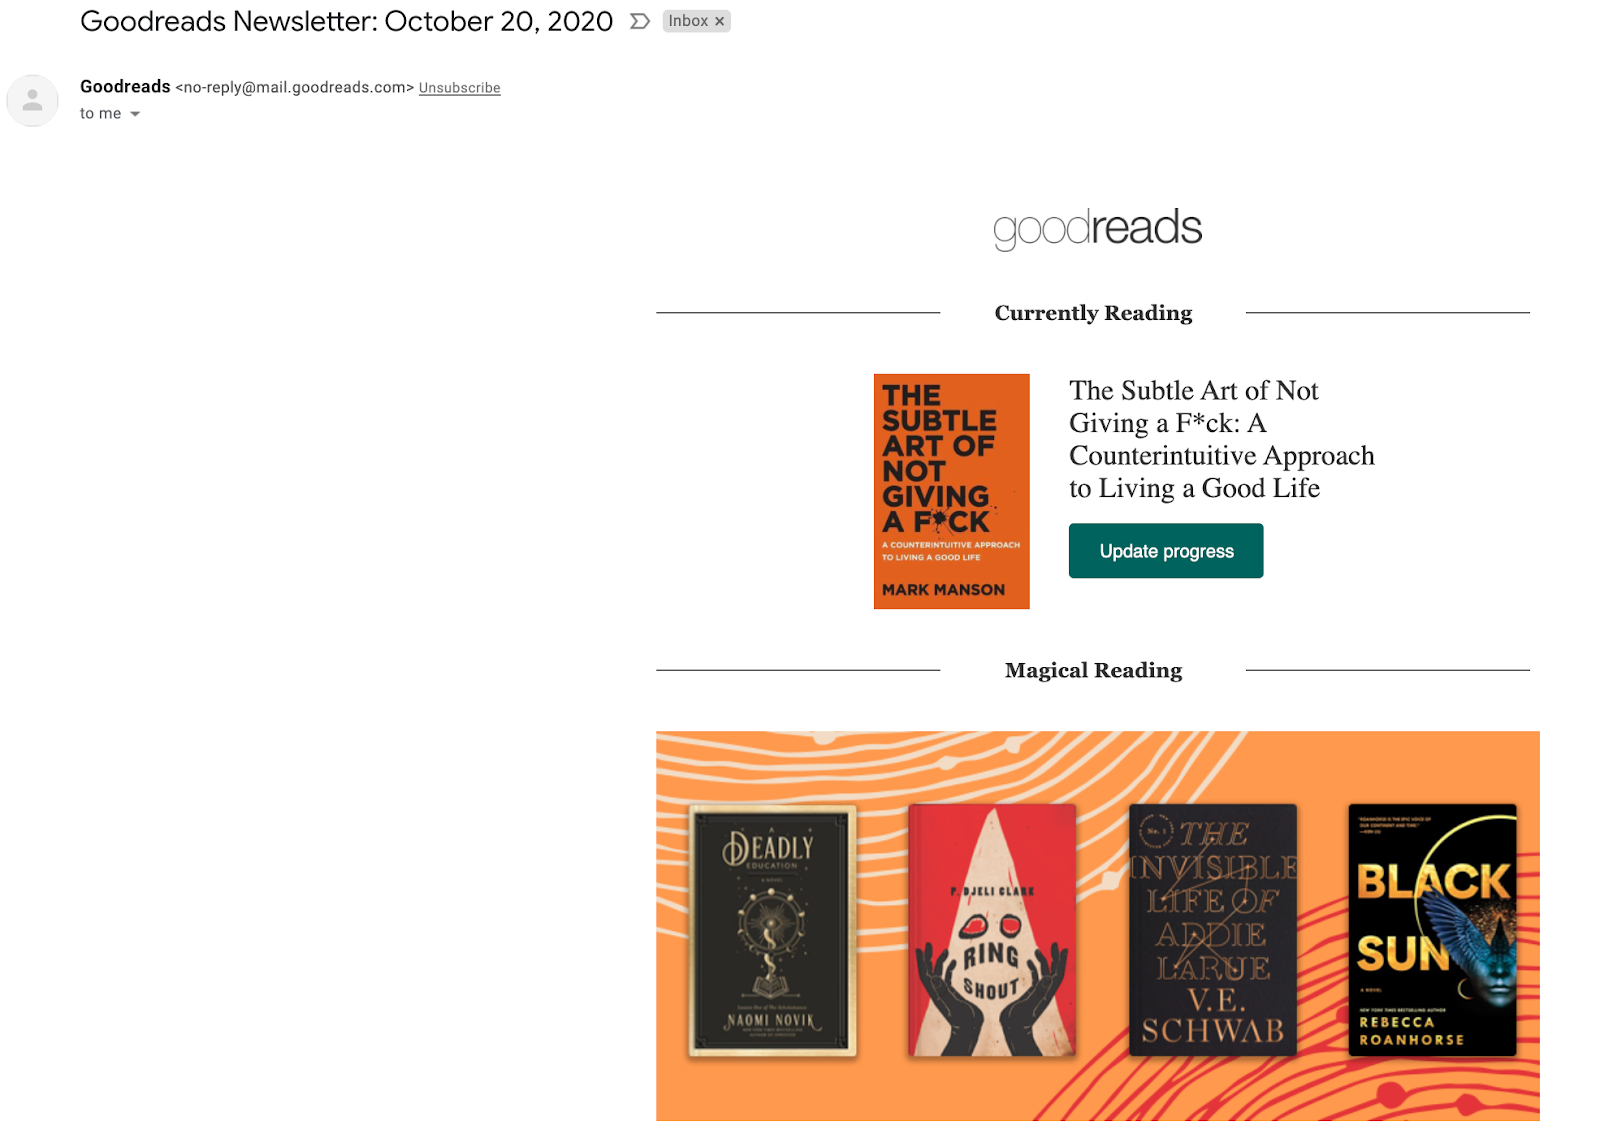 Email marketing campaign example by Goodreads